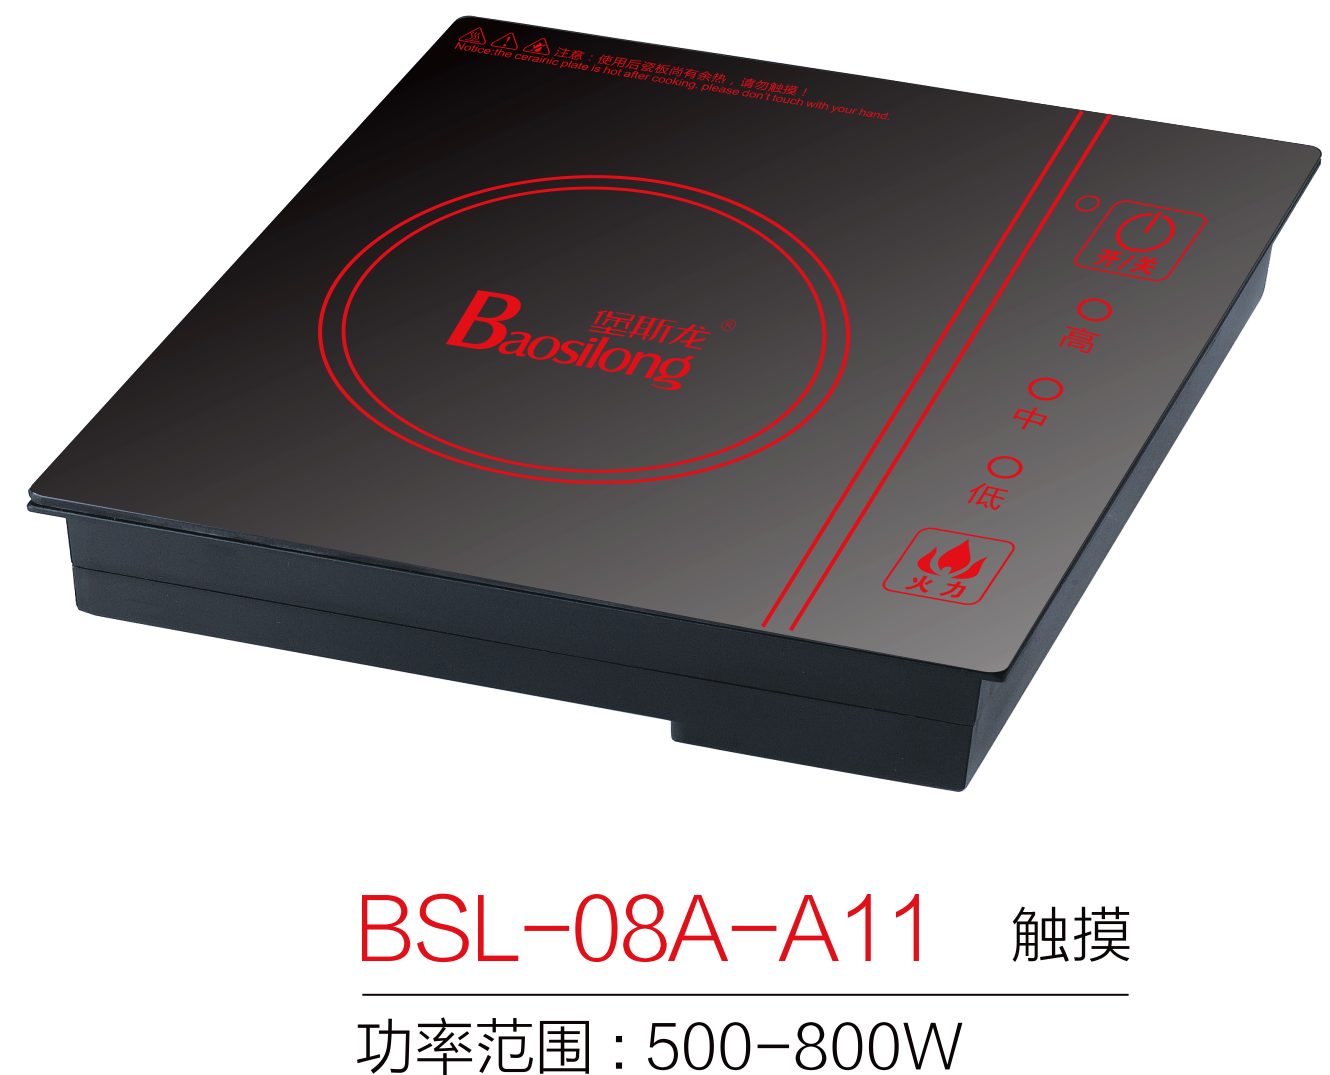 BSL-08A-A11触摸